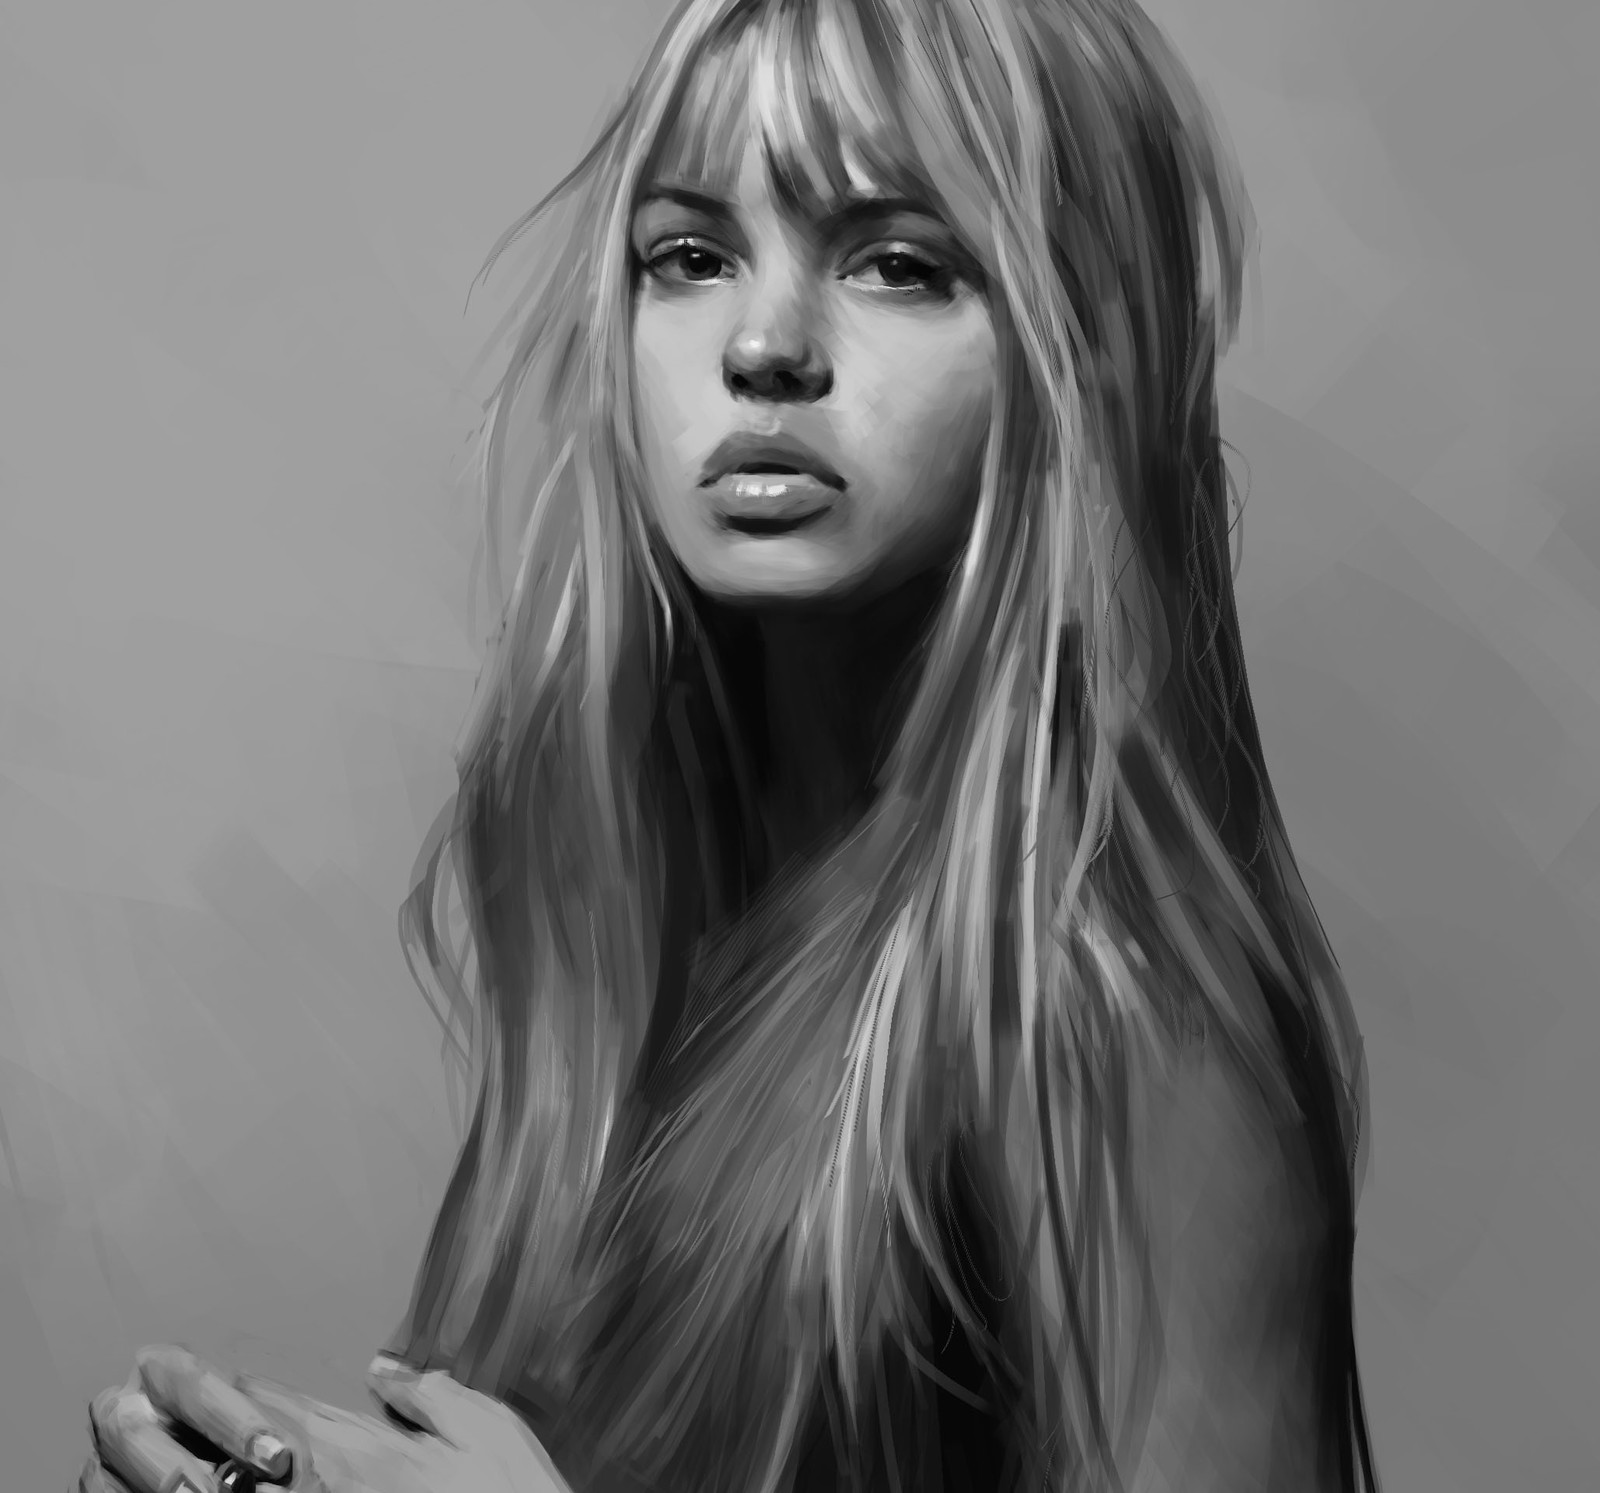 Girl value study